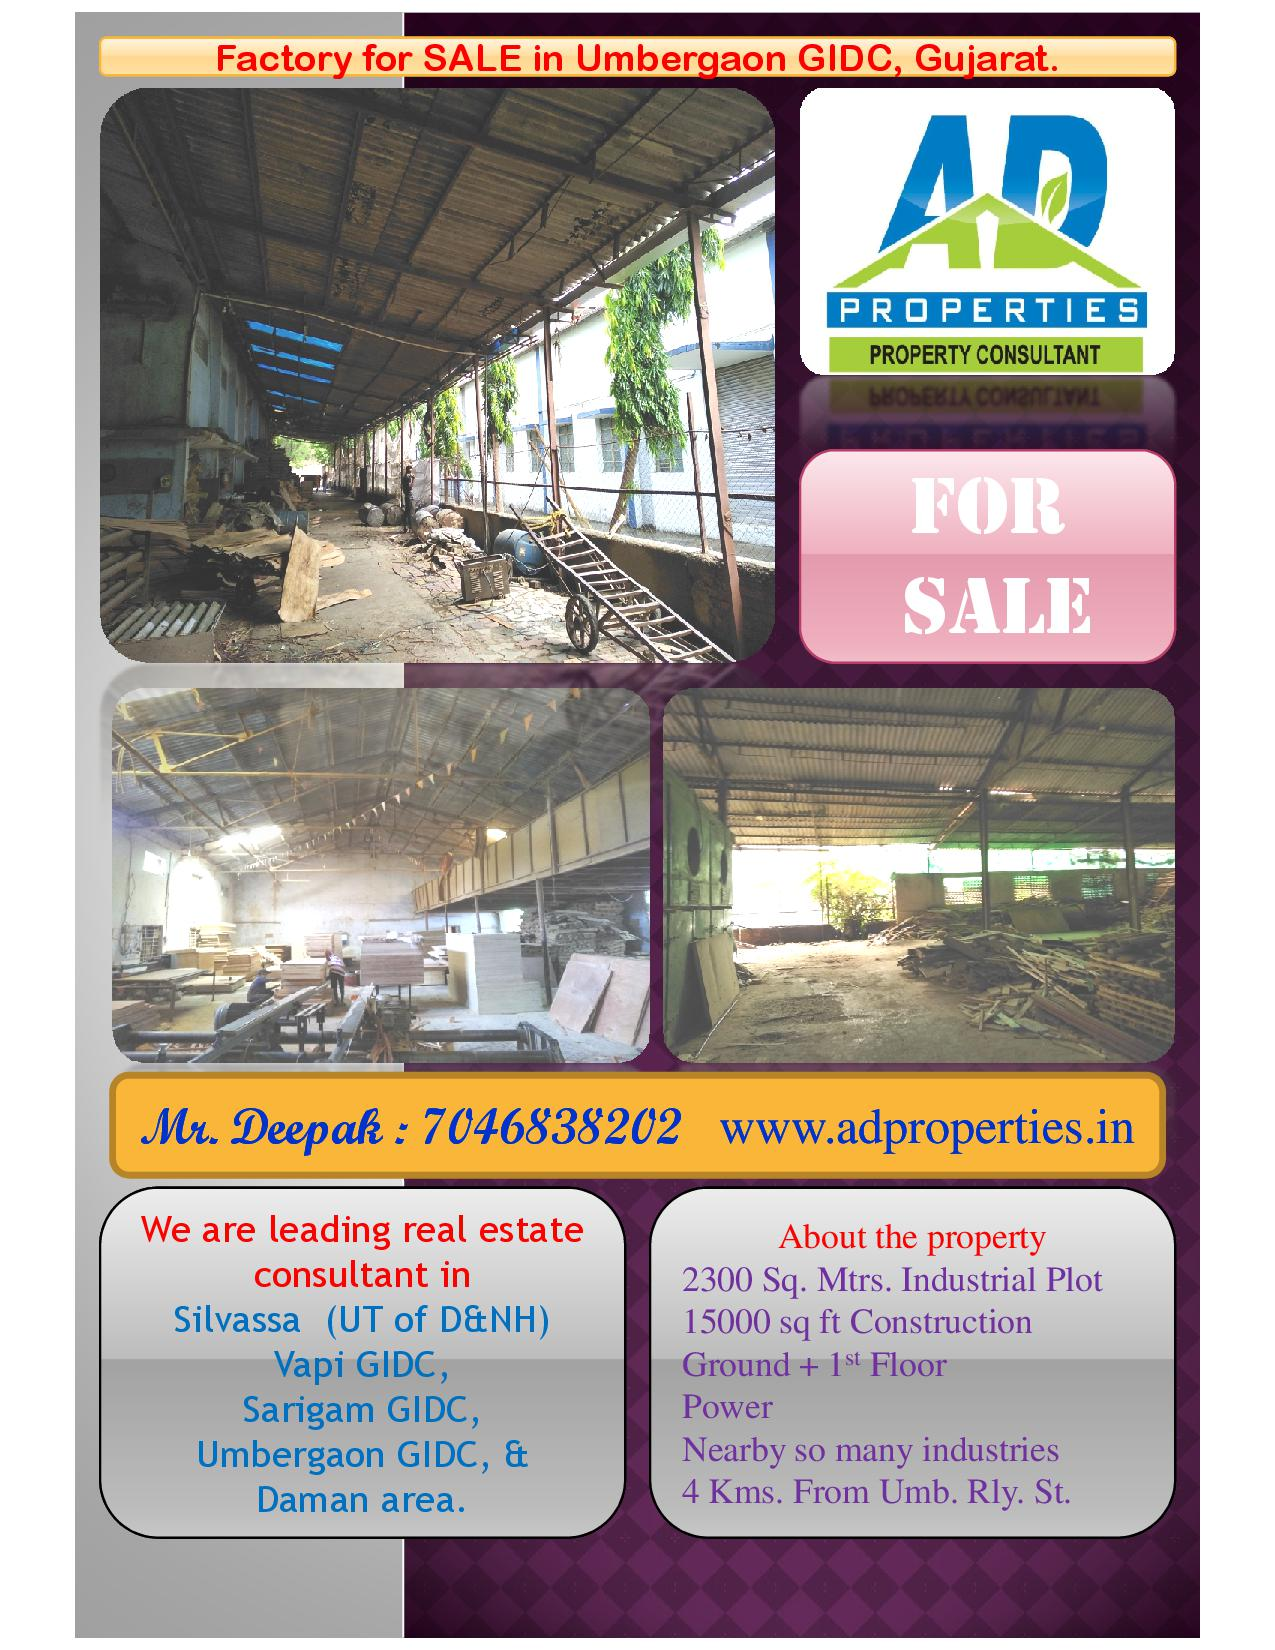 Factory for SALE at Umbergaon GIDC